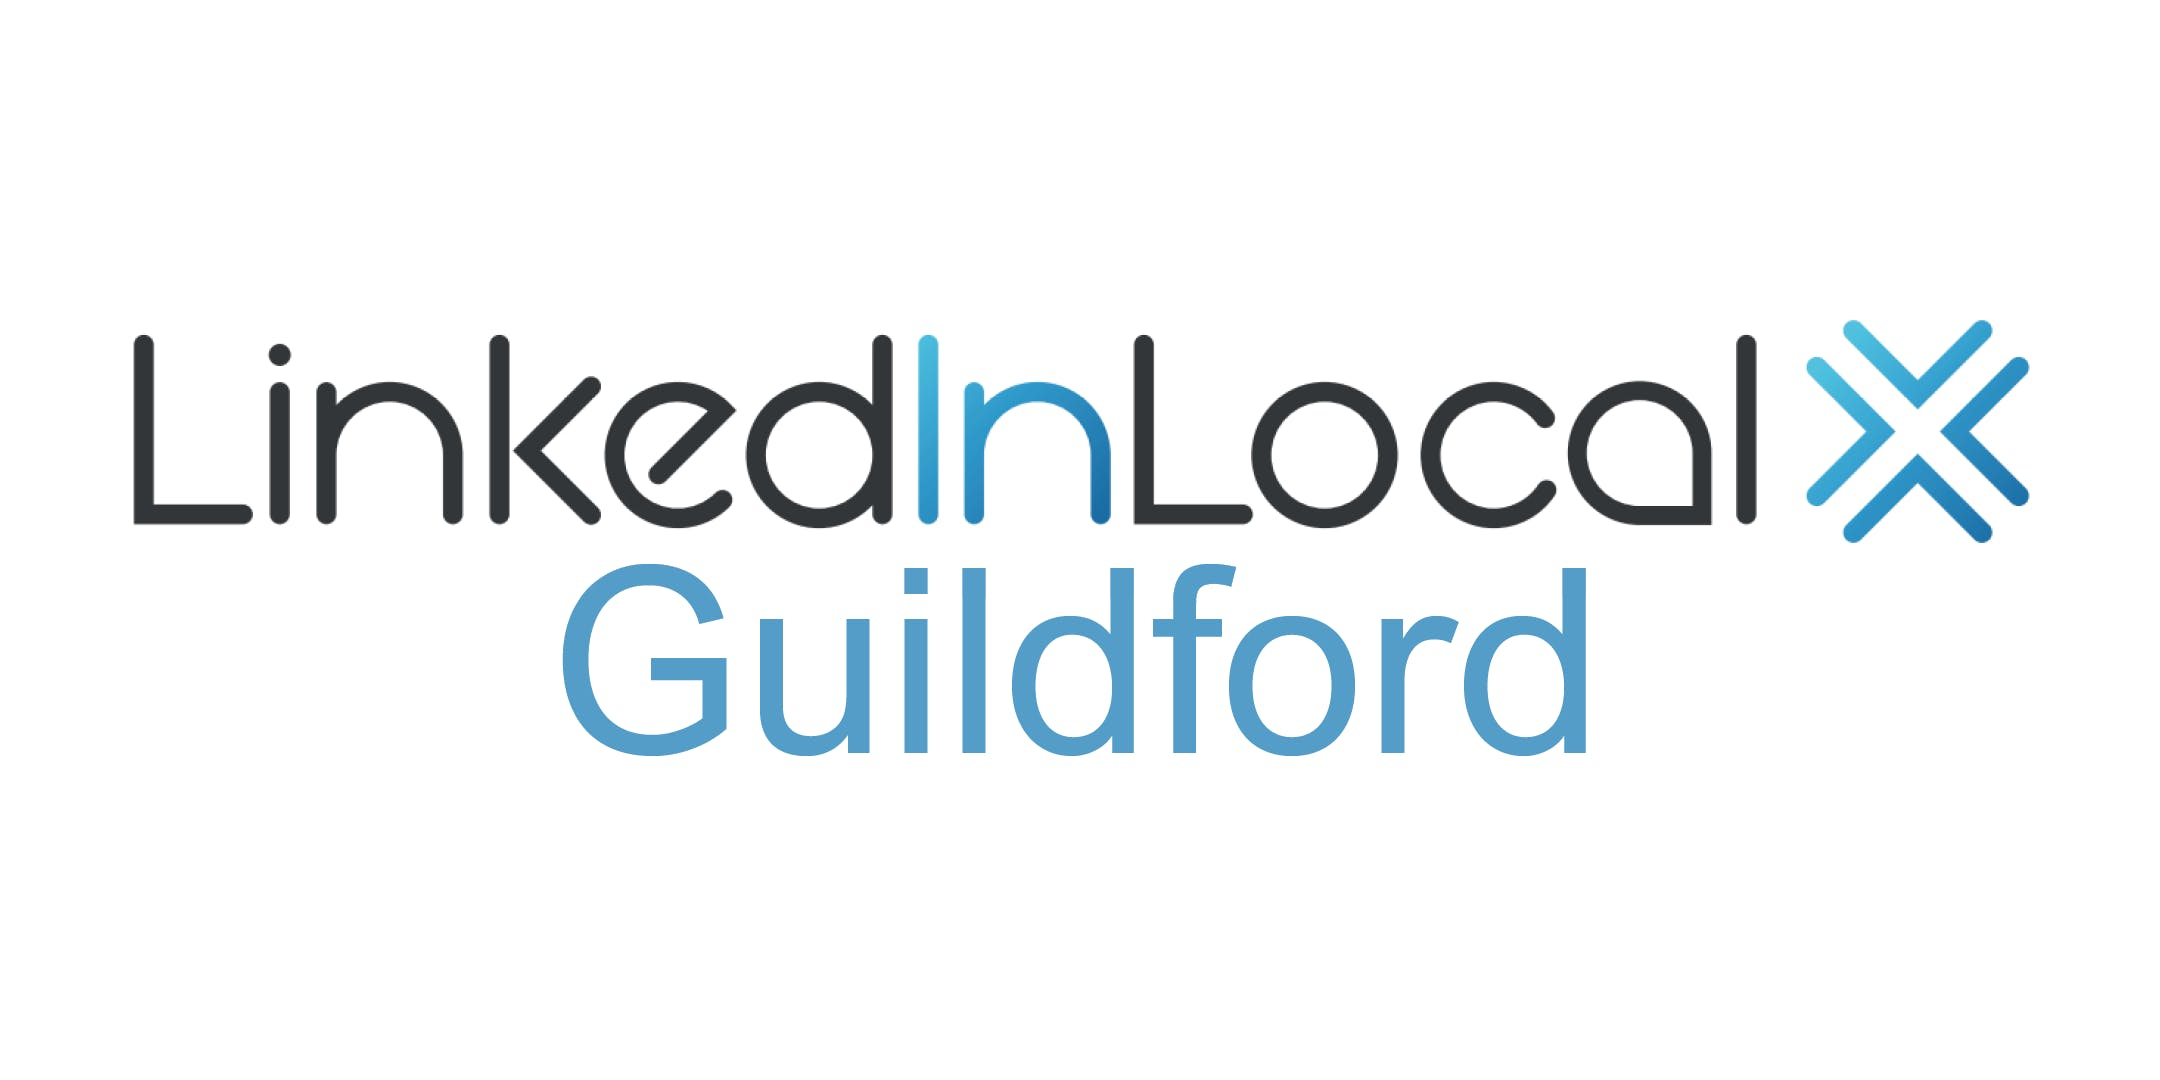 LinkedIn Local Launch in Guildford